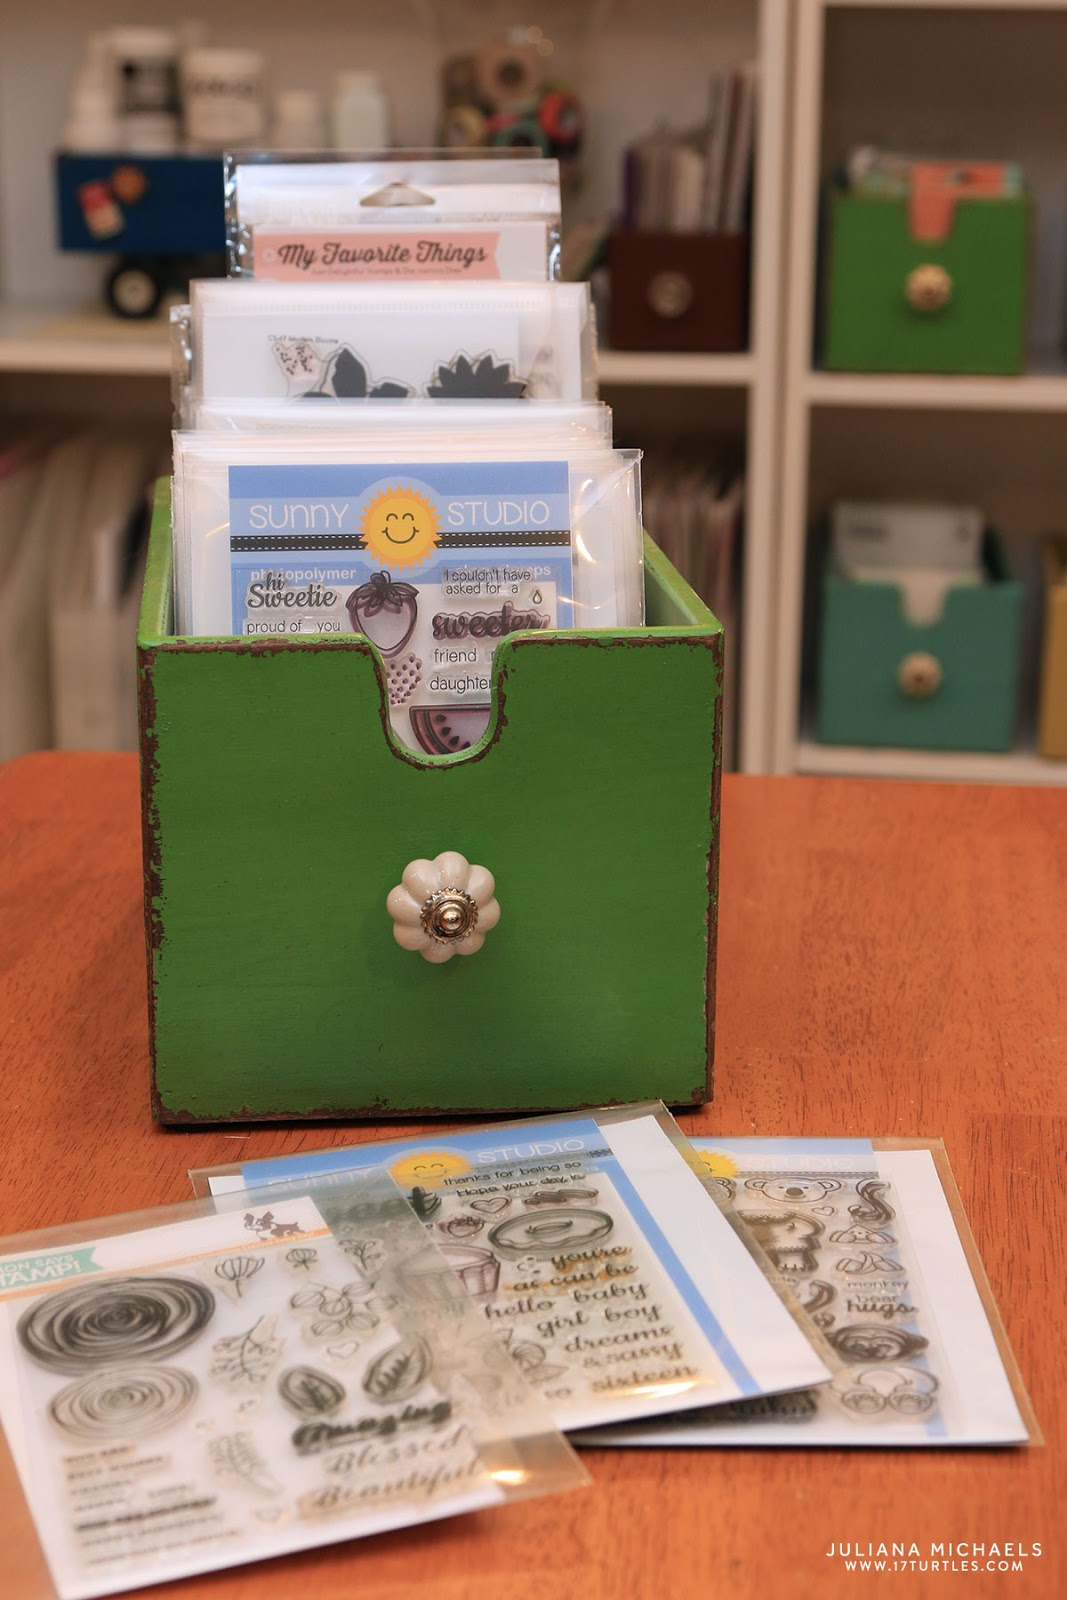 Scrapbook And Card Making Storage Ideas   Juliana Michaels Of 17turtles  Shares Her Creative Space And